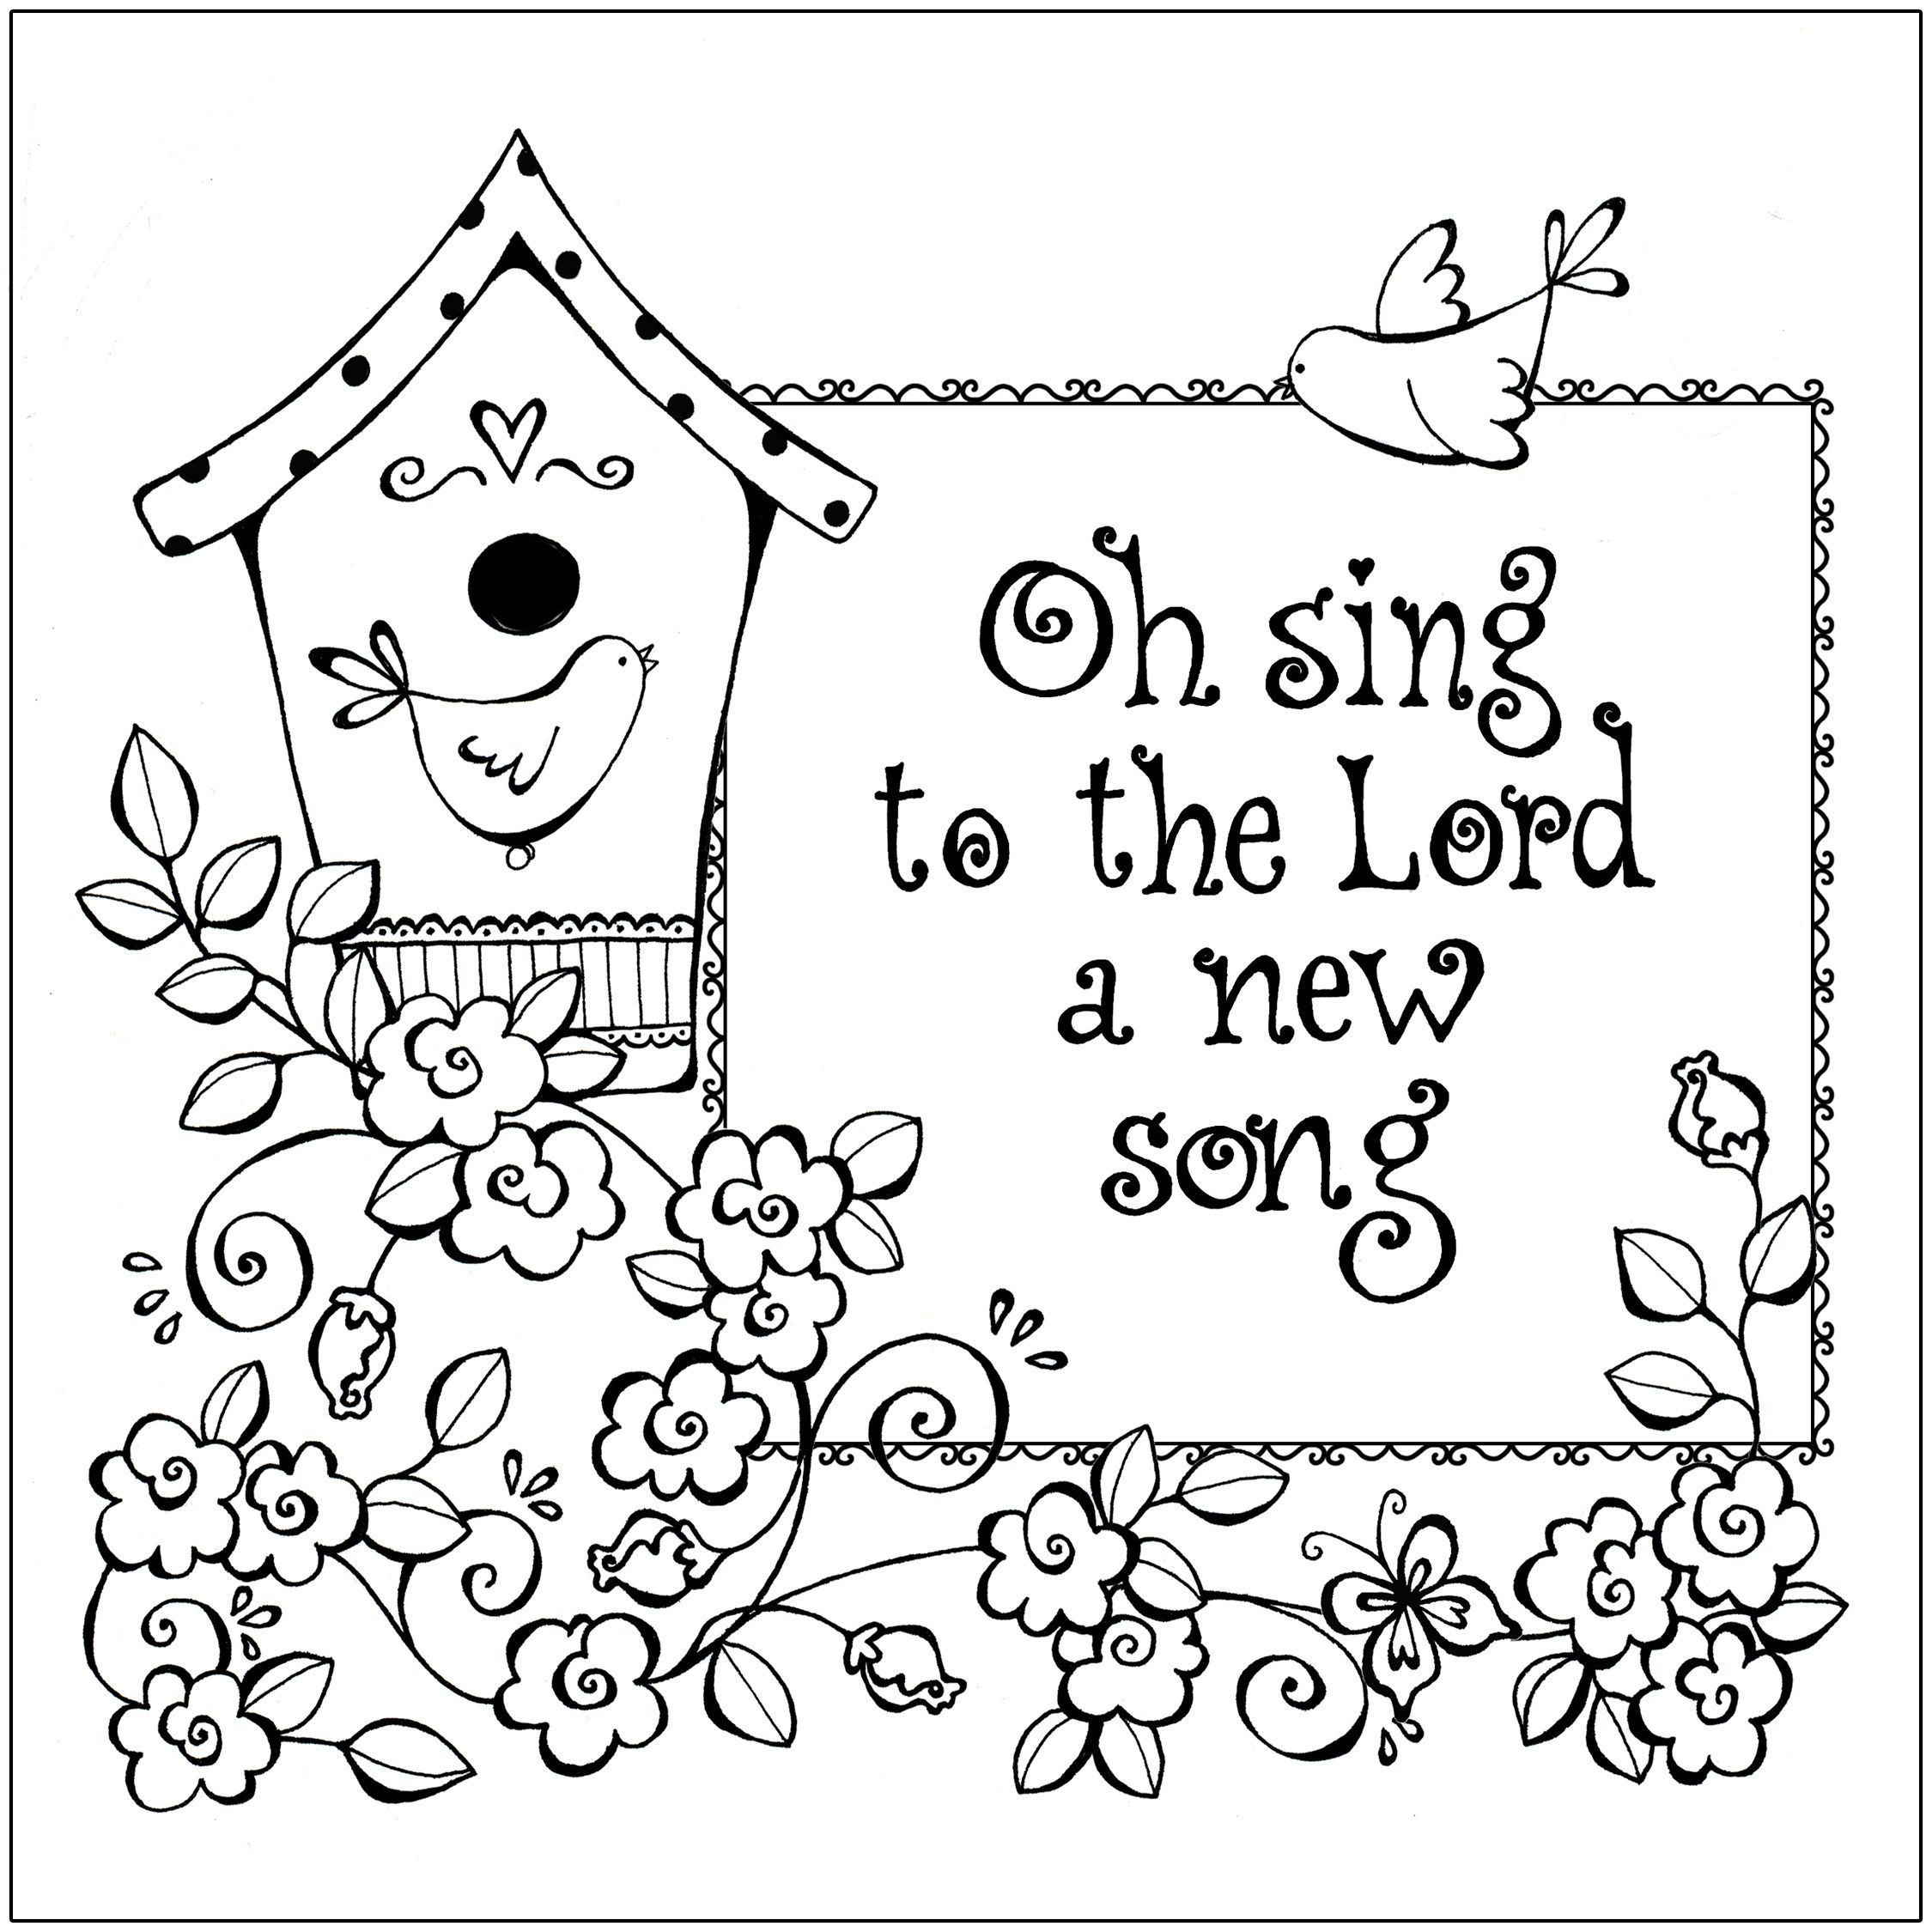 Christian Coloring Page Free Sunday School Pages Printable Bible Amusing For Kids